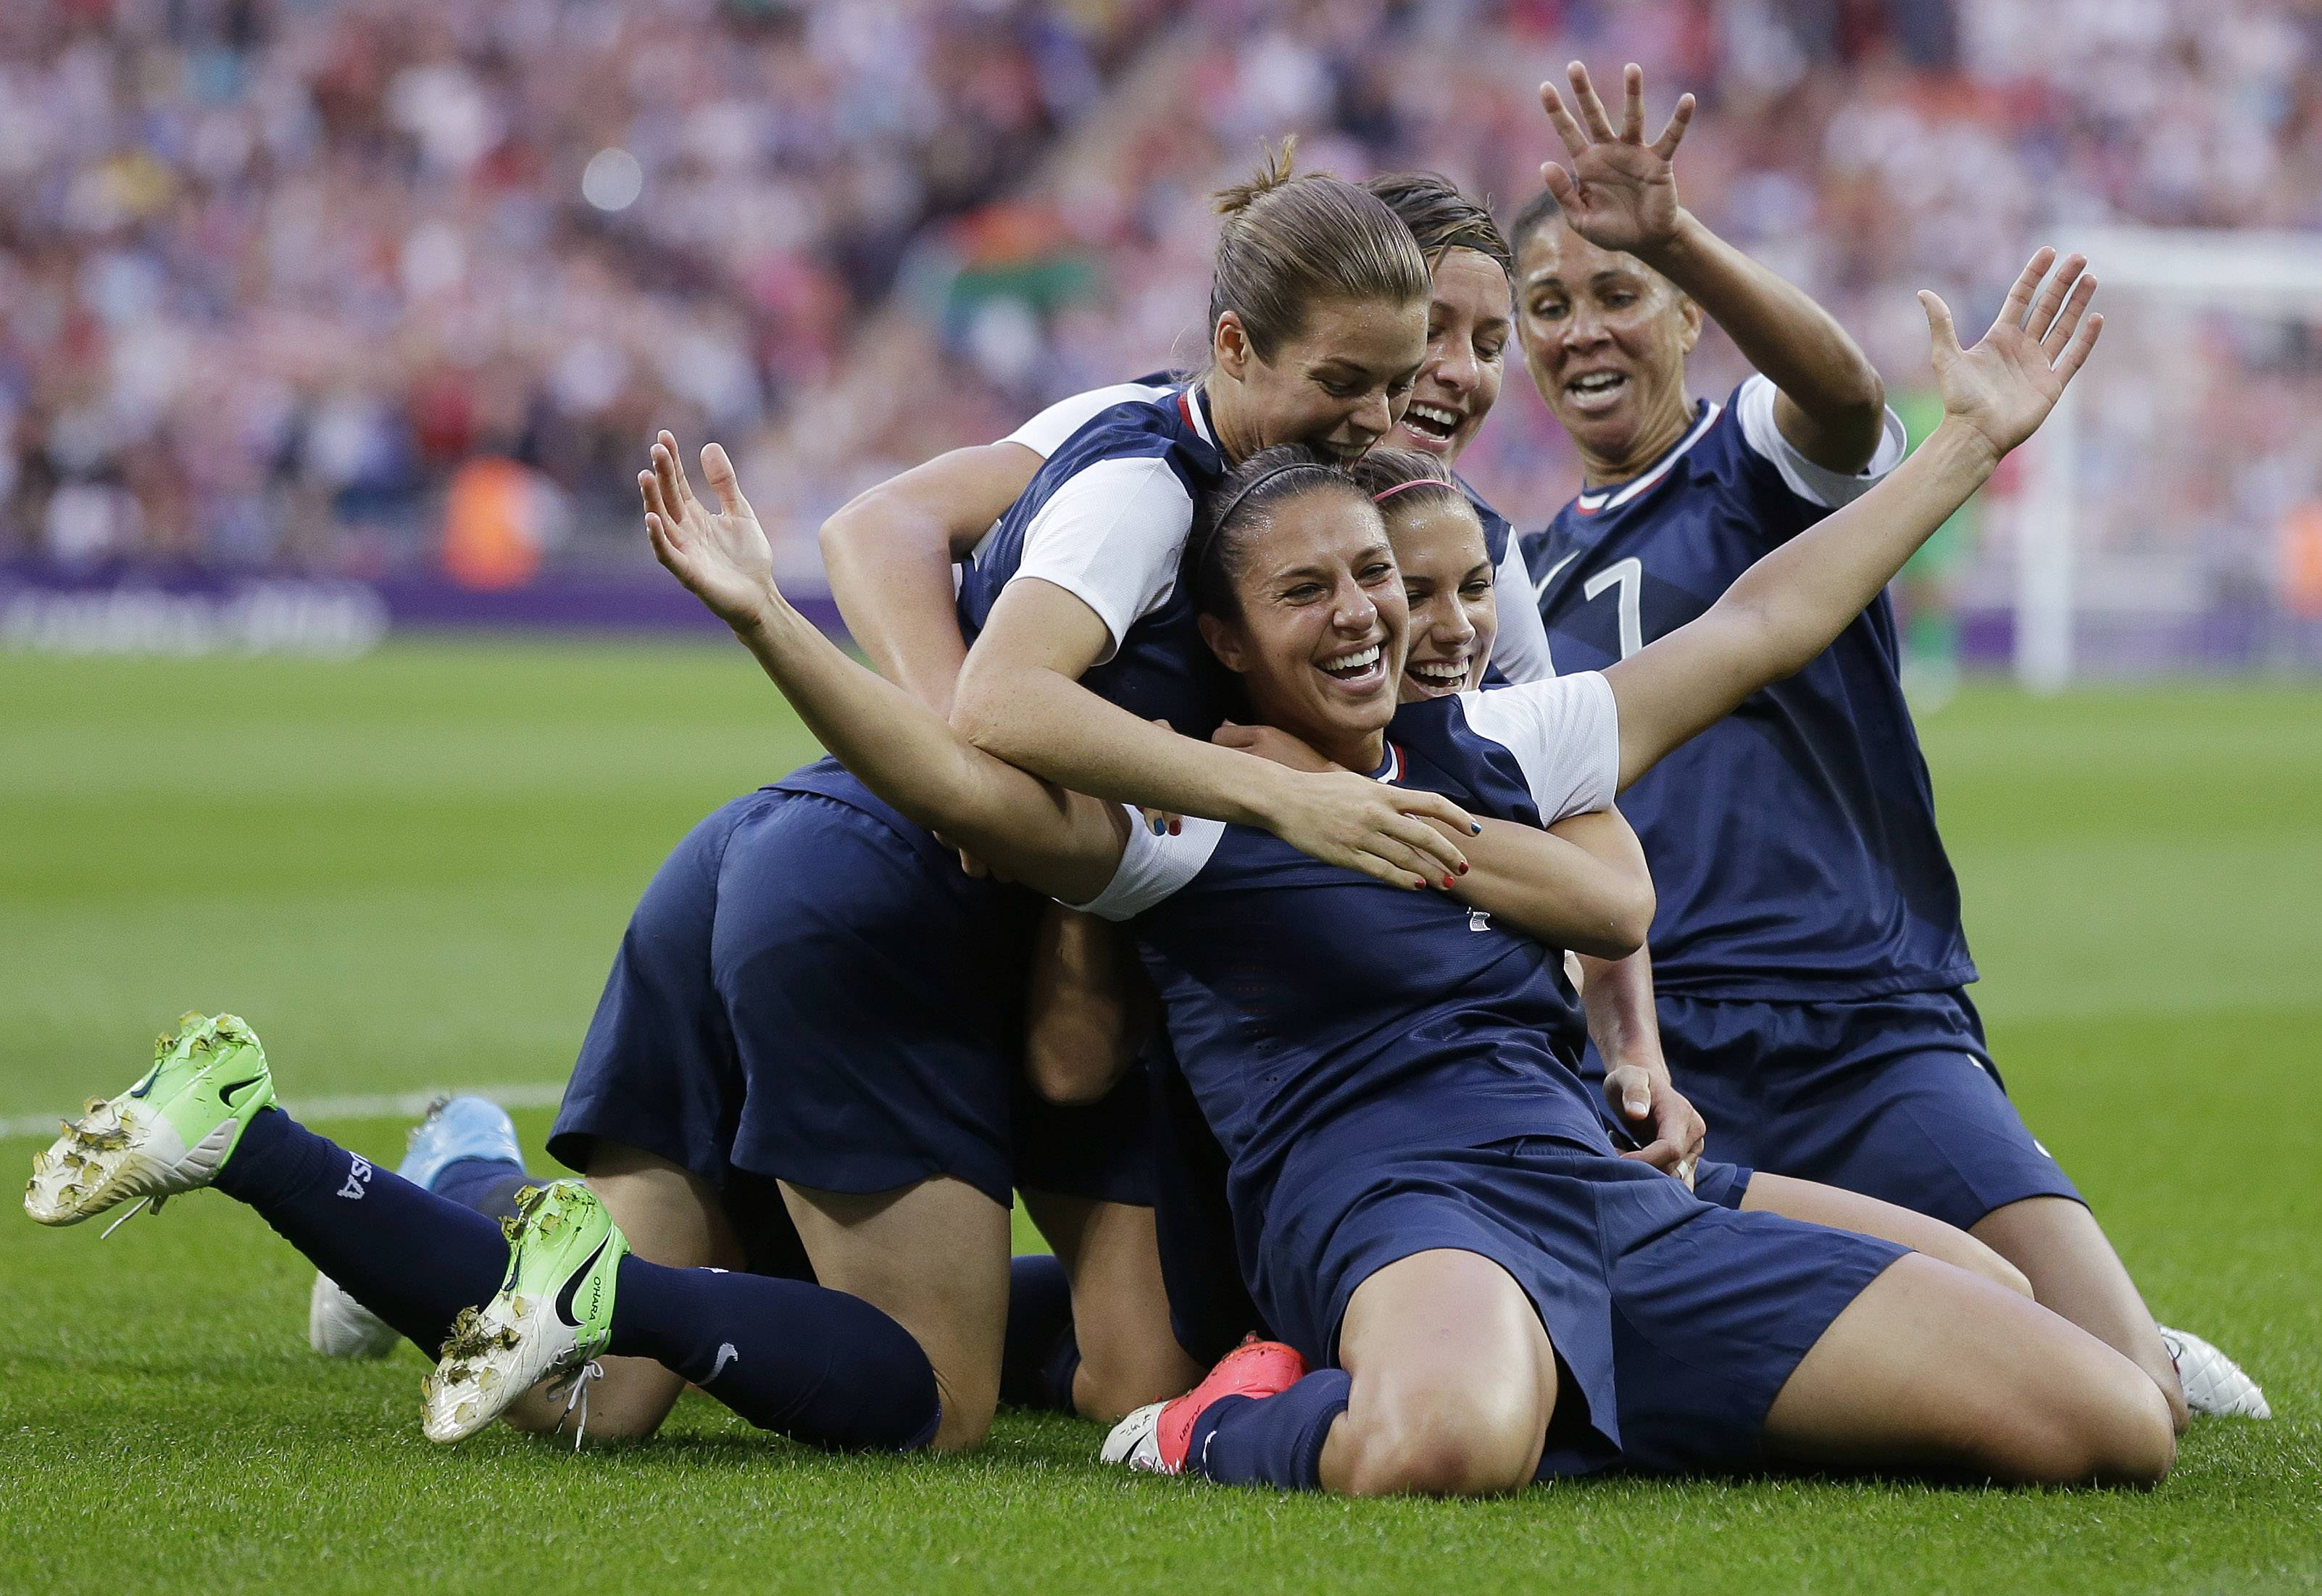 The United States' Carli Lloyd, right, celebrates with teammates after scoring Thursday during the gold medal match against Japan.